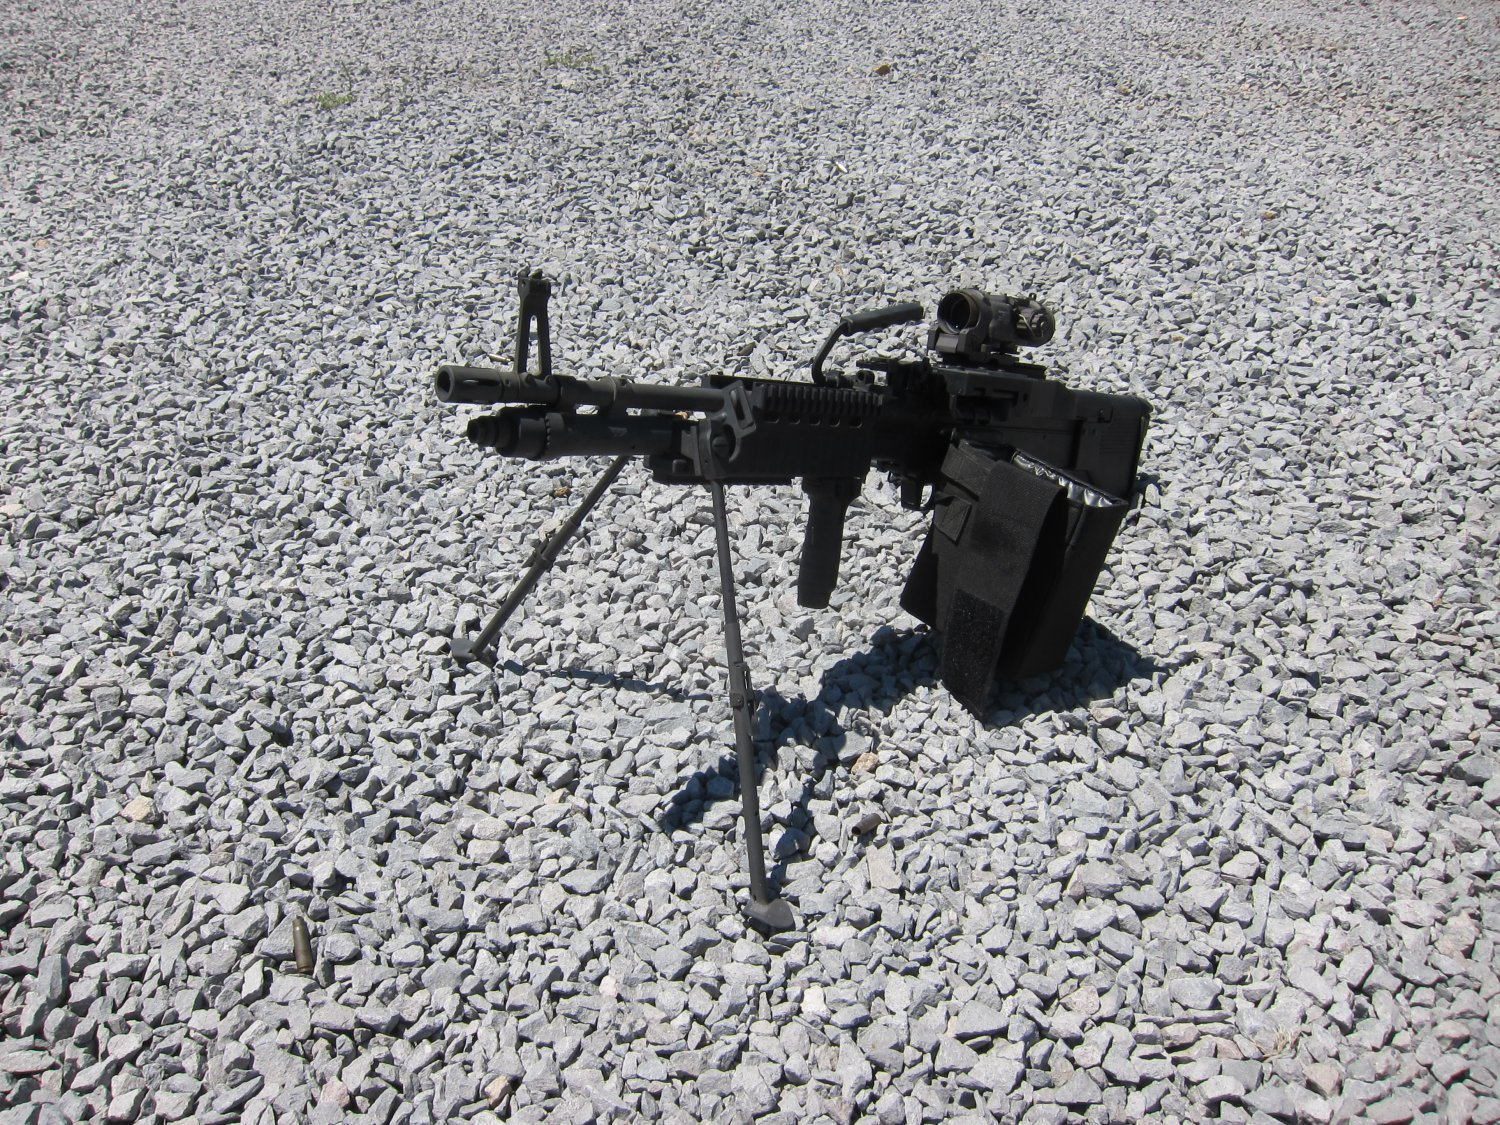 U.S. Ordnance Mk43 Mod 1 M60E4 Medium Machine Gun 7.62mm MMG 3 <!  :en  >U.S. Ordnance Mk43 Mod 1/M60E4 Commando 7.62mm NATO Medium Machine Gun (MMG) for Special Operations Forces (U.S. Navy SEALs): Latest Version Weapon Gets Test Fired at the Range (Video!) <!  :  >